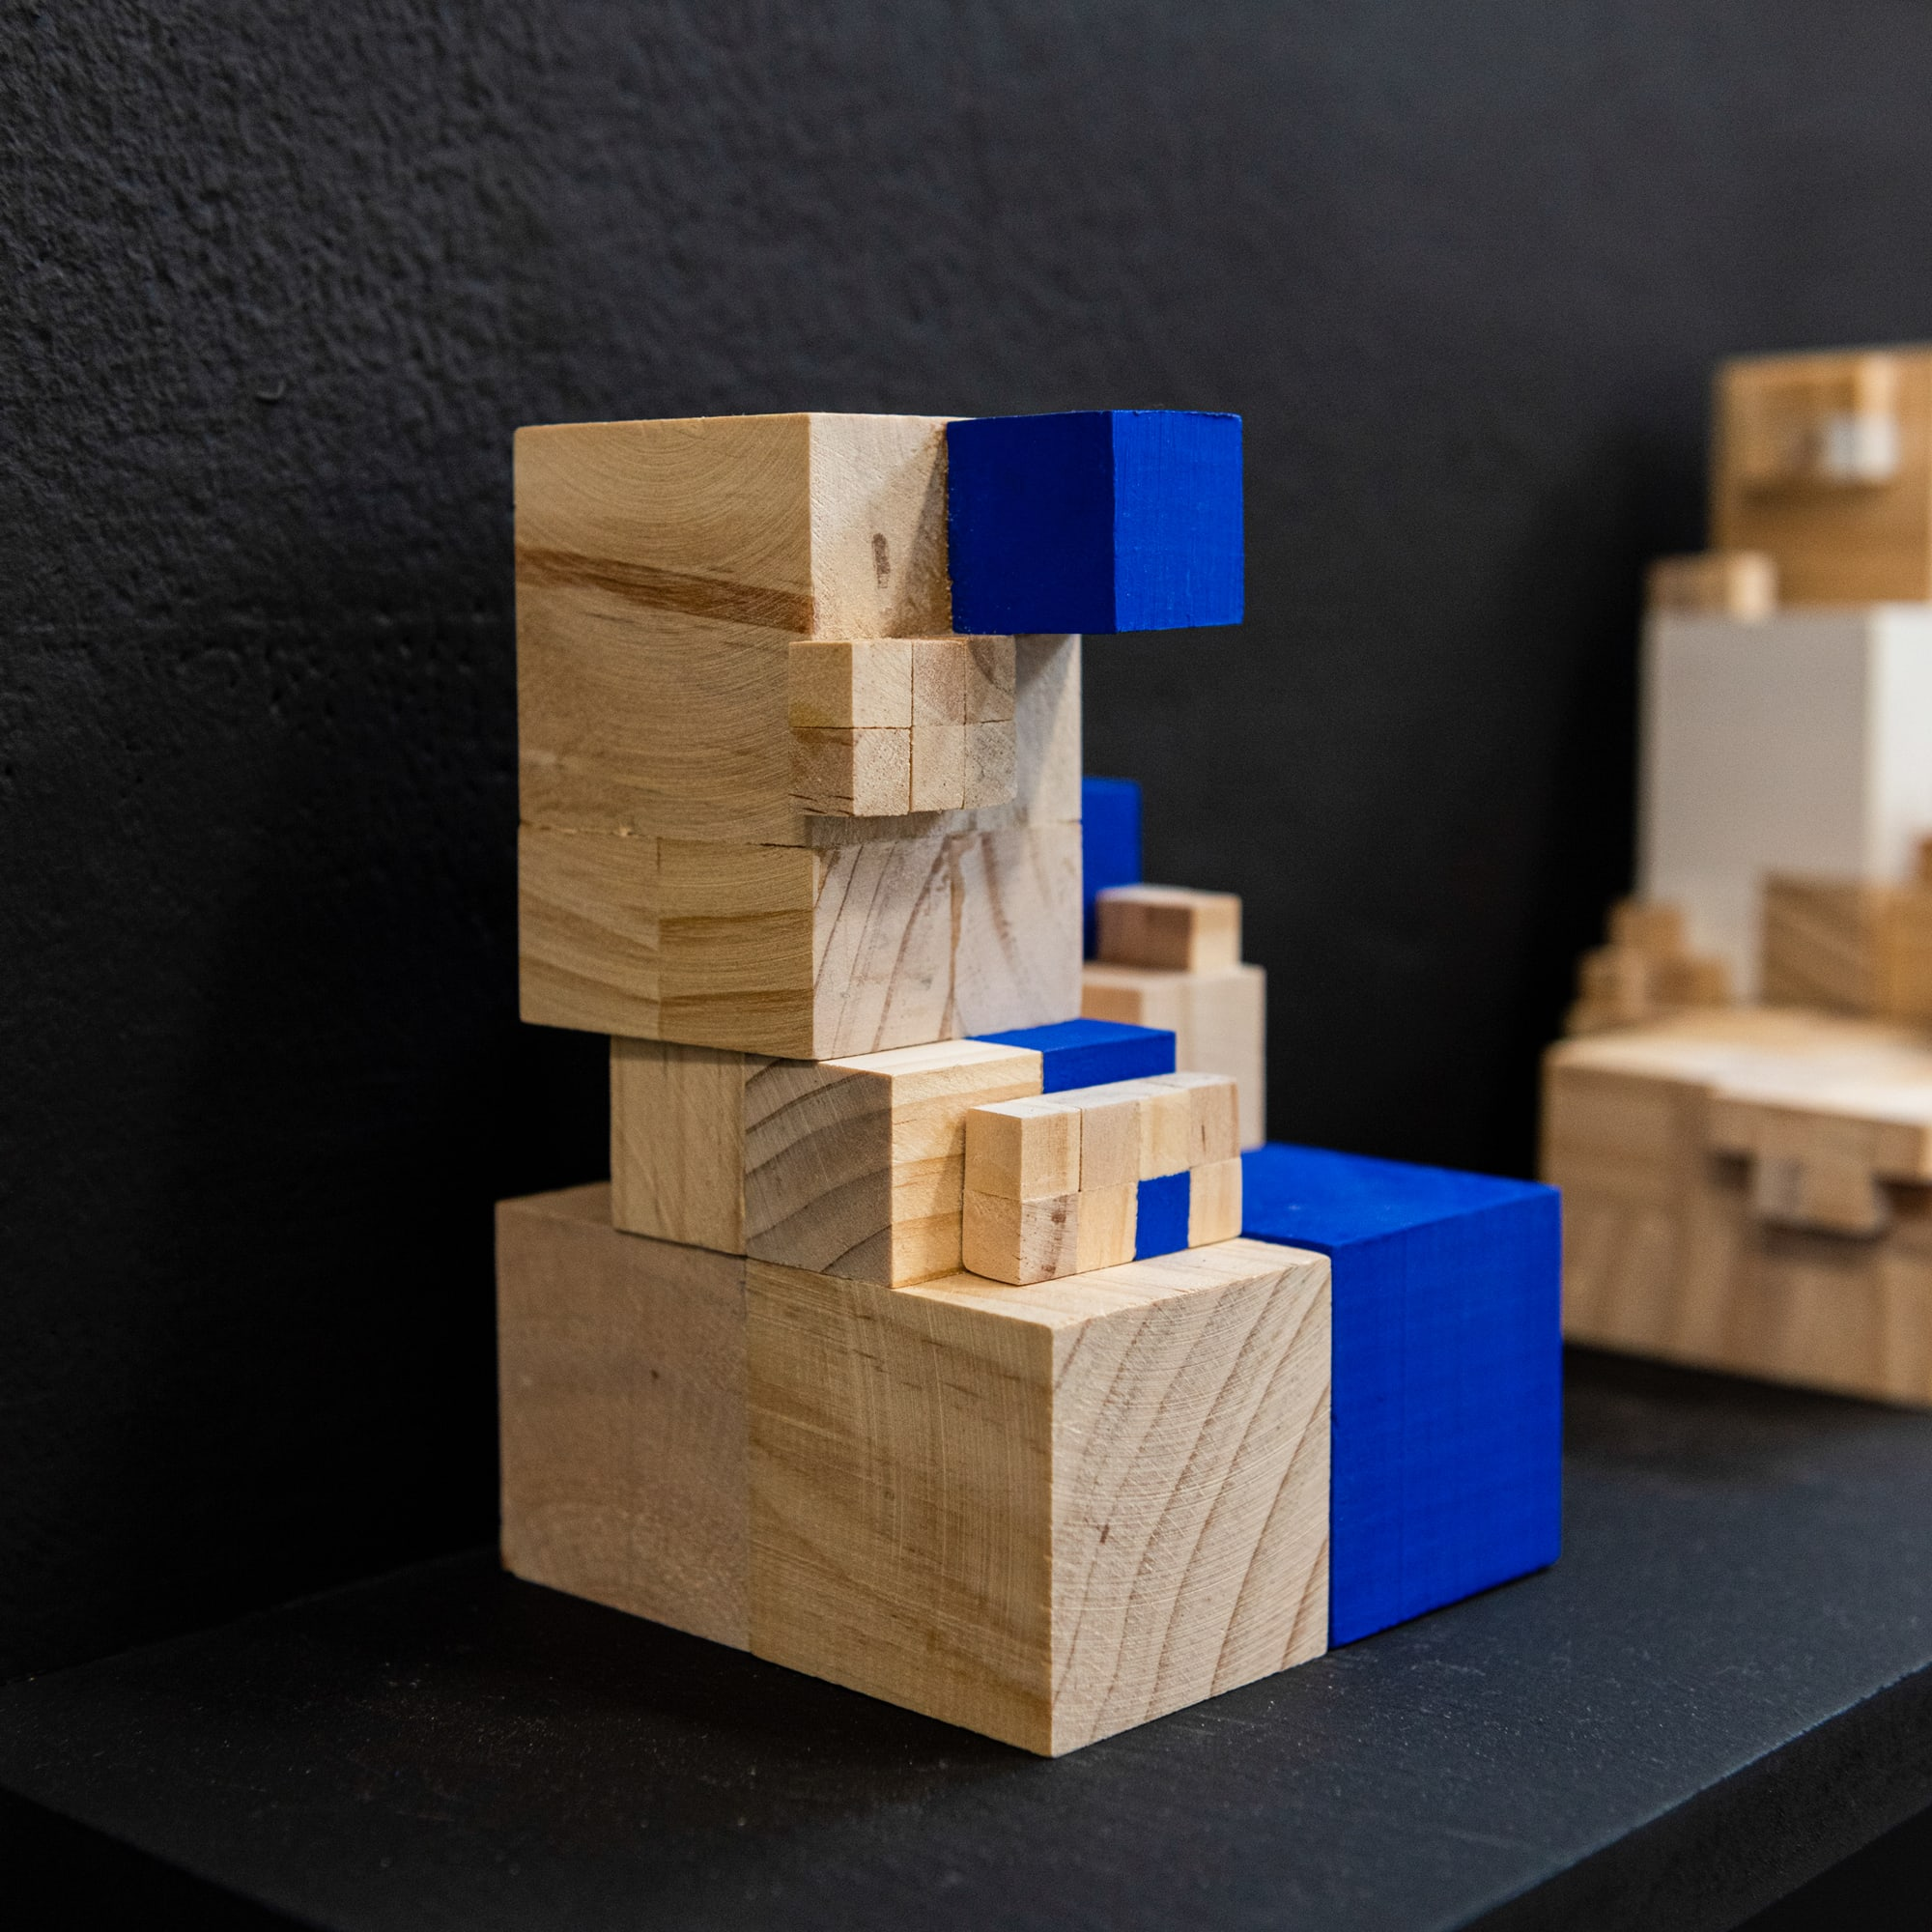 Construction of wooden blocks on a shelf